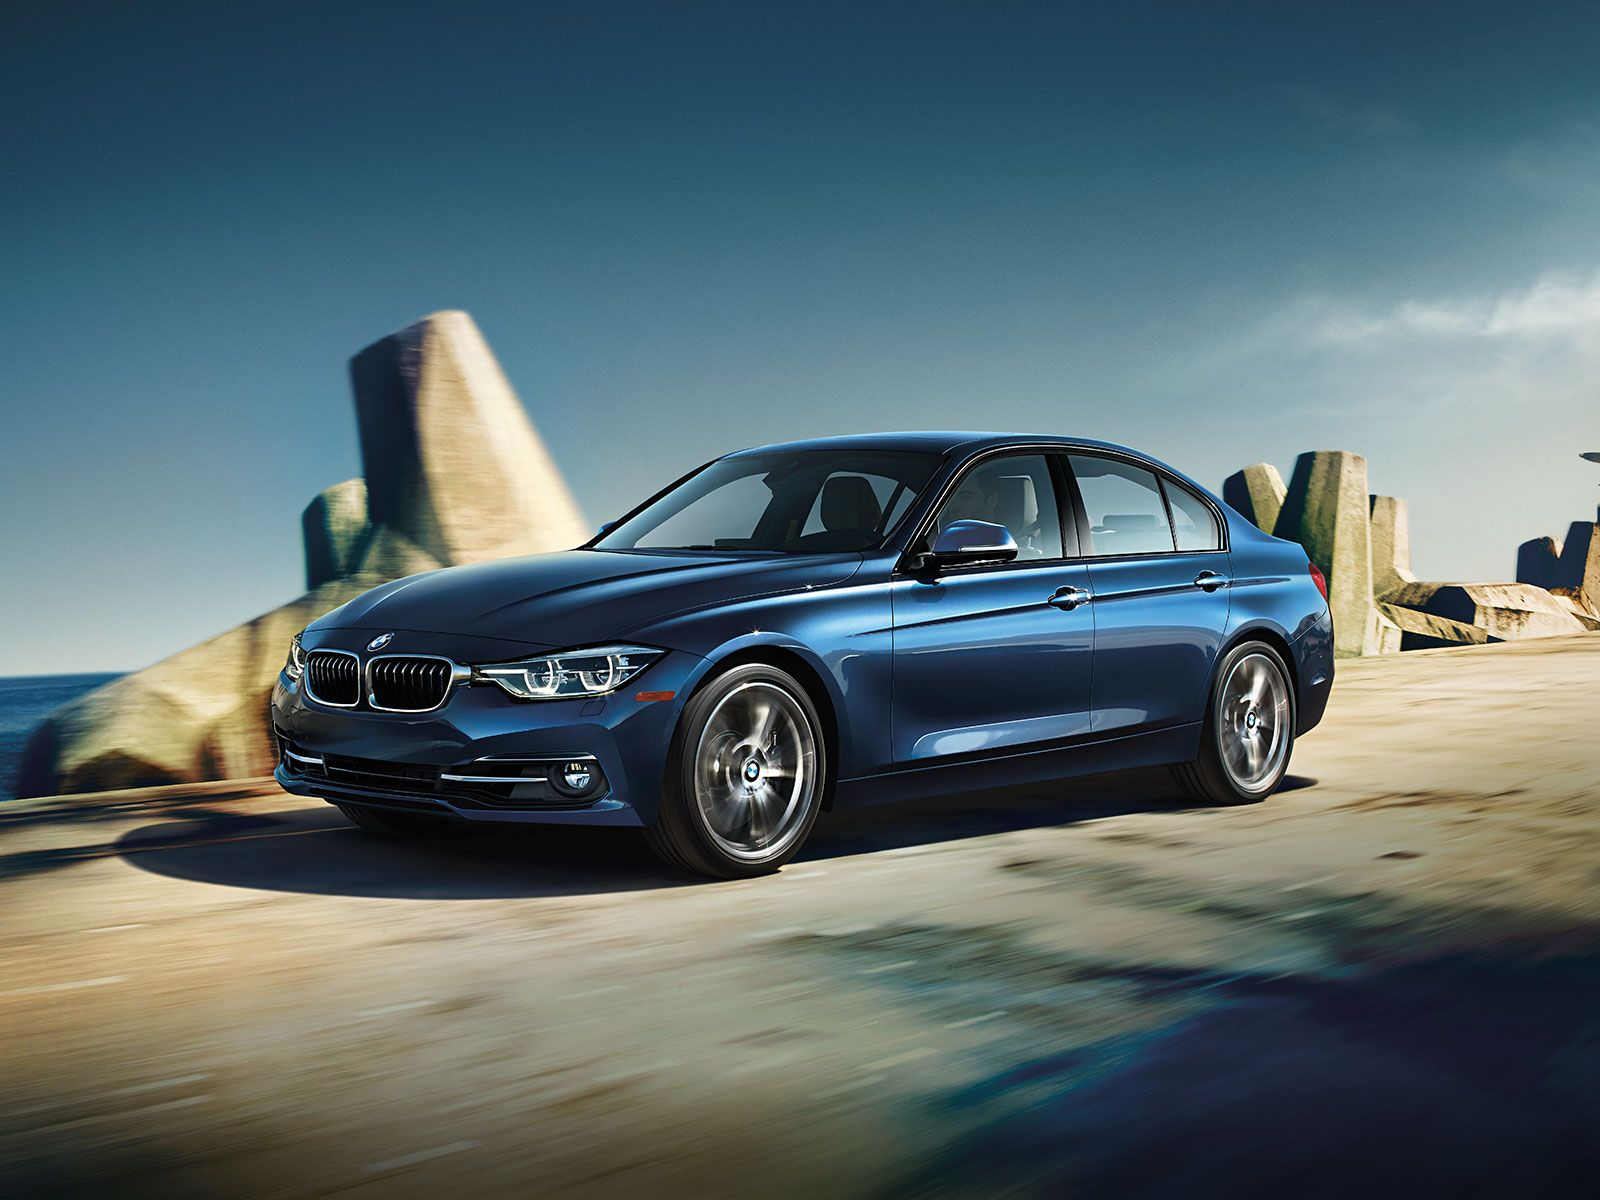 Take on the road with 320 horsepower and the ability to